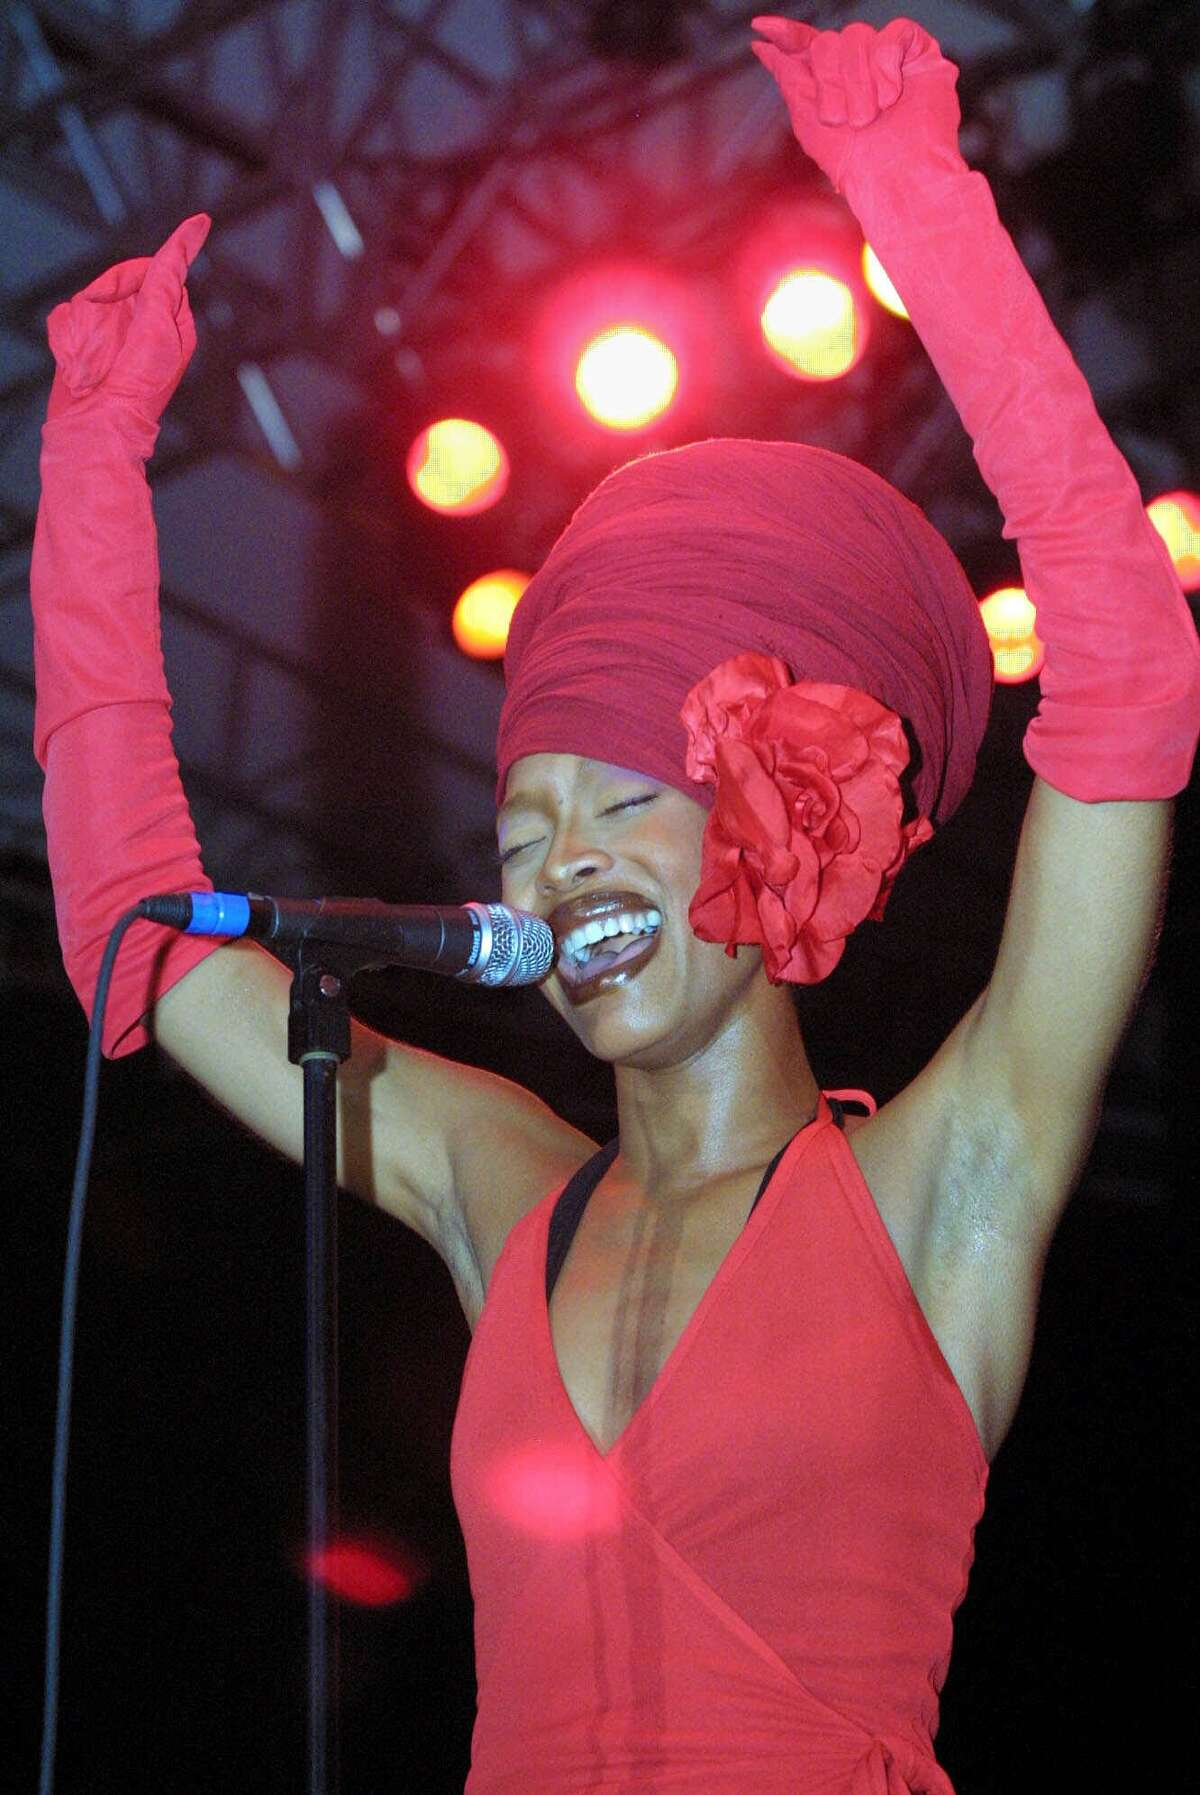 Singer Erykah Badu performs in concert at the Central Park SummerStage in New York Monday, August 6, 2001. (AP Photo/Shawn Baldwin)